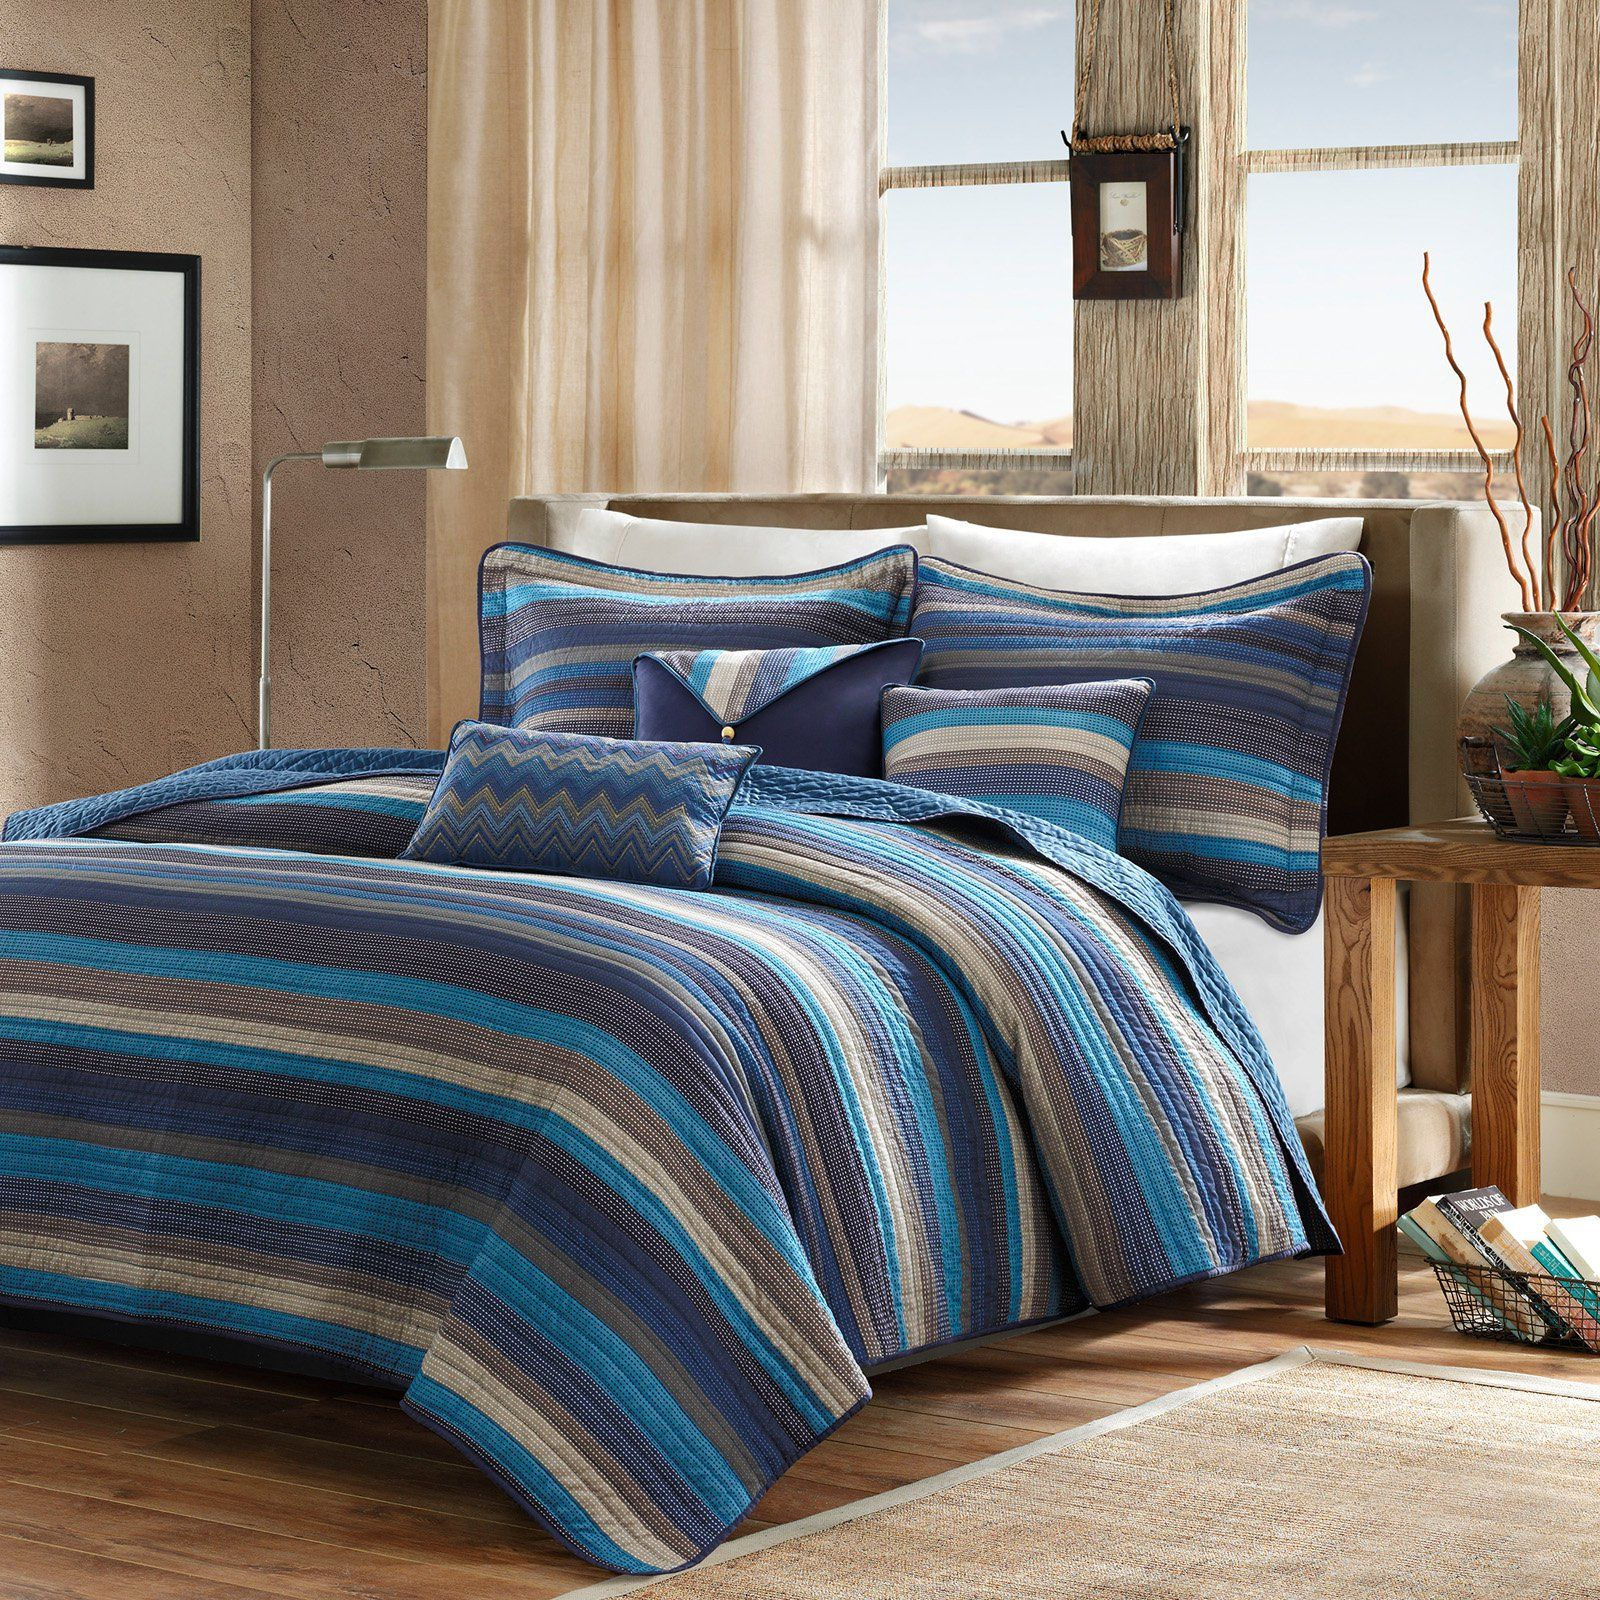 Madison Park Apartments California: Yosemite Quilted Coverlet Set By Madison Park